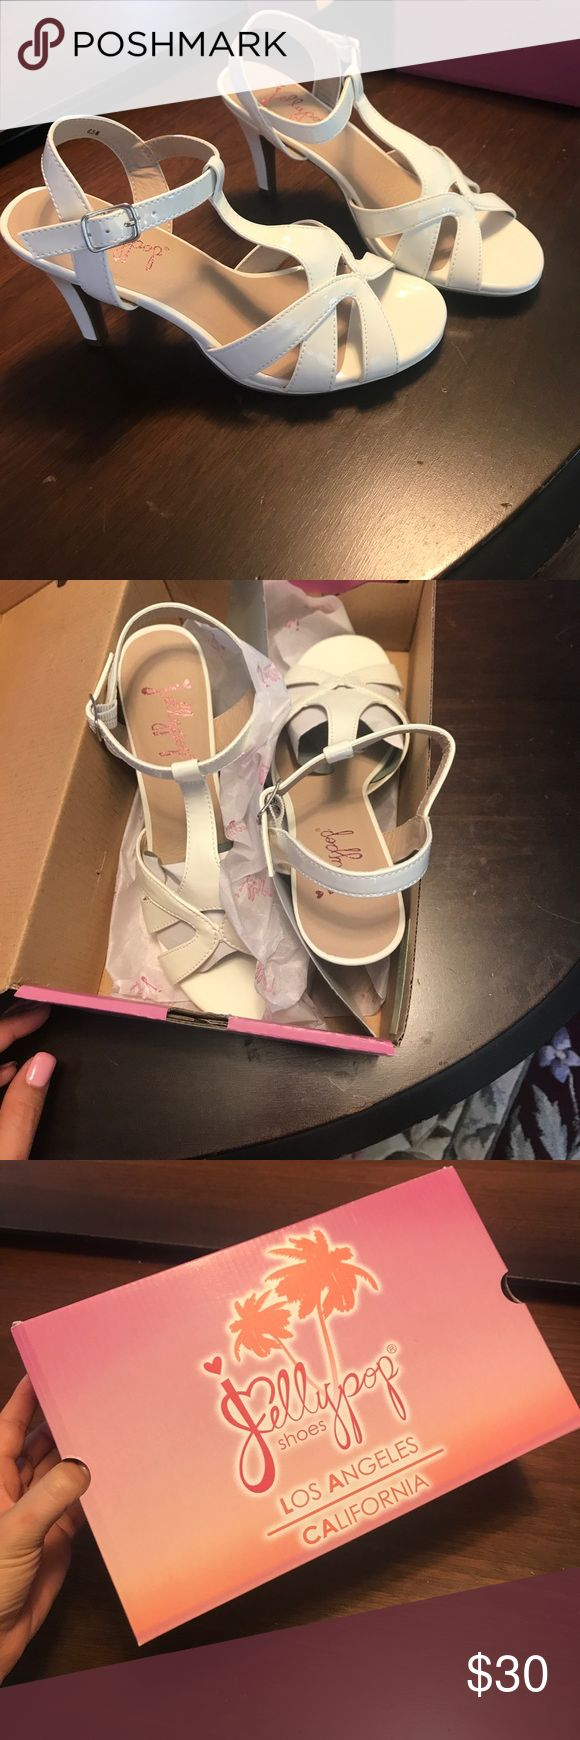 NEW Women's White Jellypop Shoes size 6.5 Brand new, never used Jellypop Shoes. Womens. Size 6.5. These are so cute for this summer to wear with a cute summer dress or a night out! 💓🤗 paid new 49.00 asking 30 Jellypop  Shoes Heels